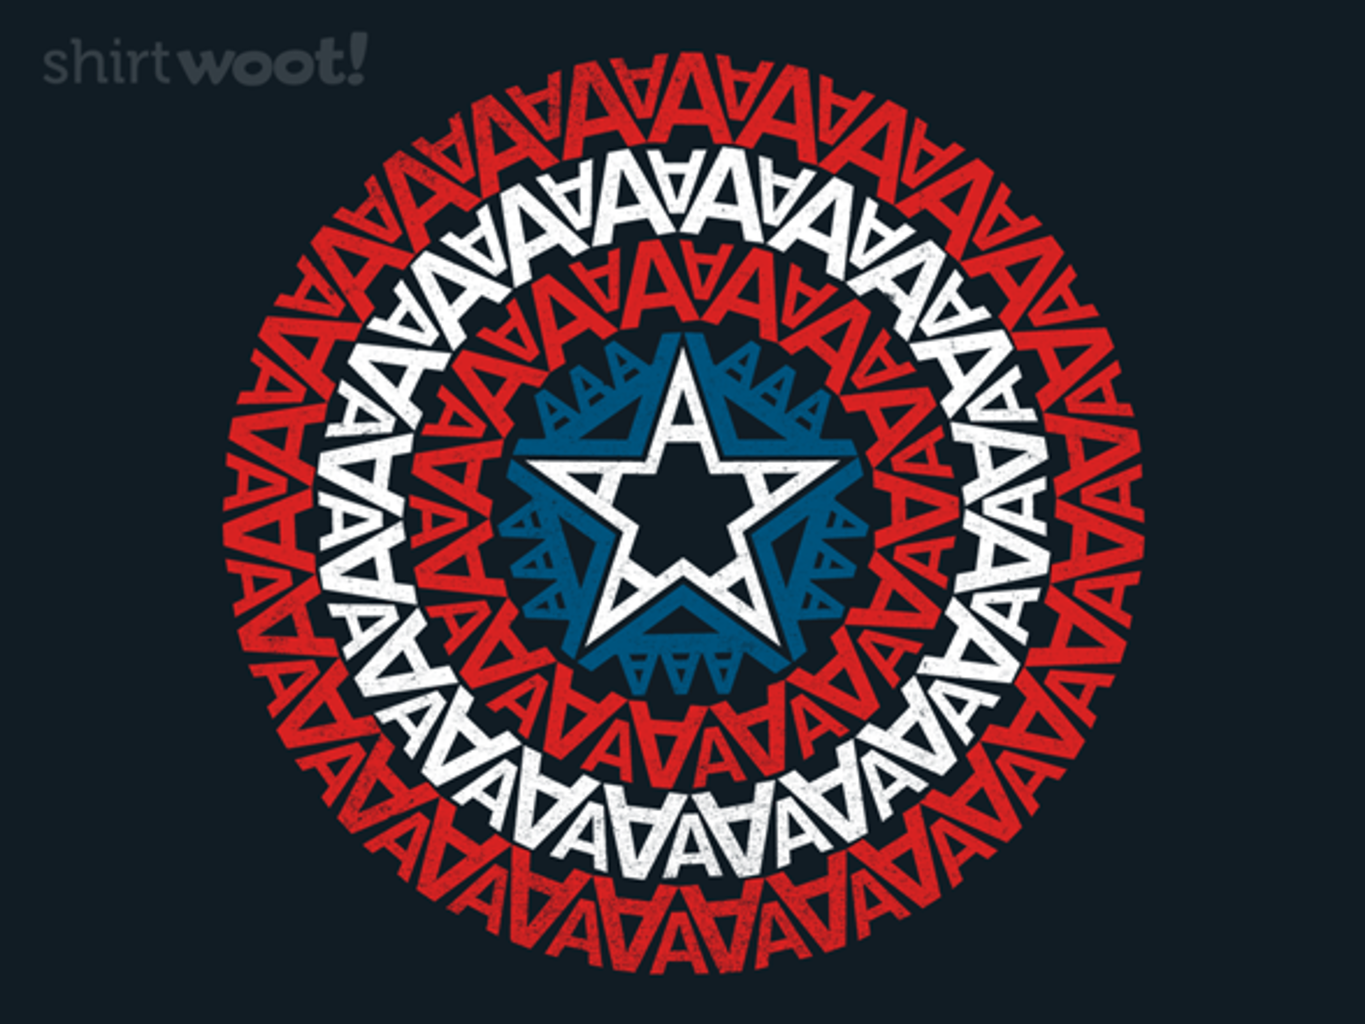 Woot!: A Is for America